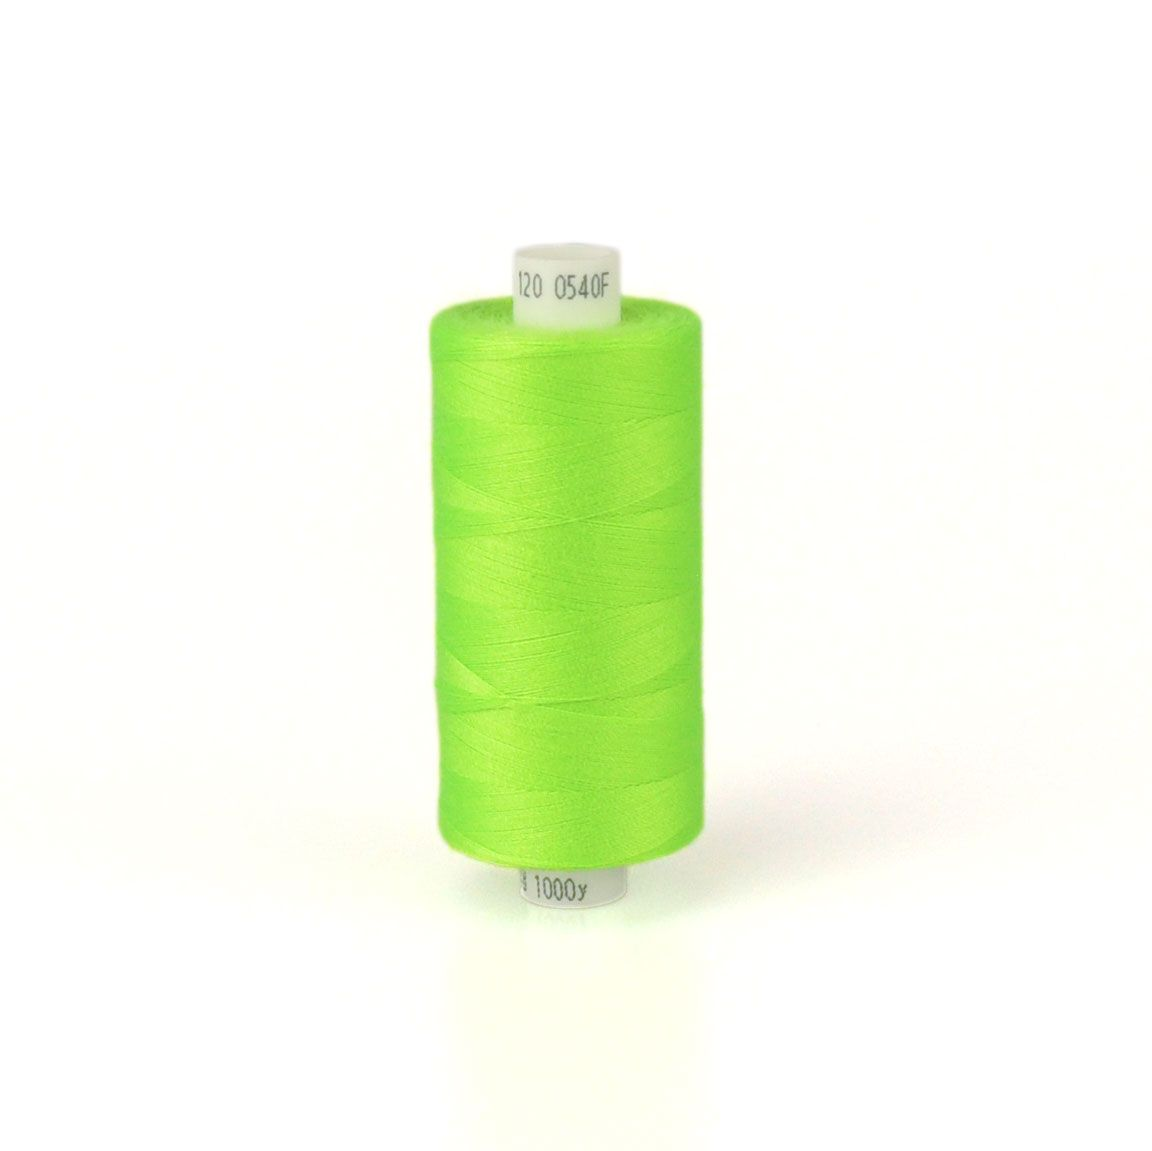 Moon 1000m Polyester Thread Flo Green 0540F